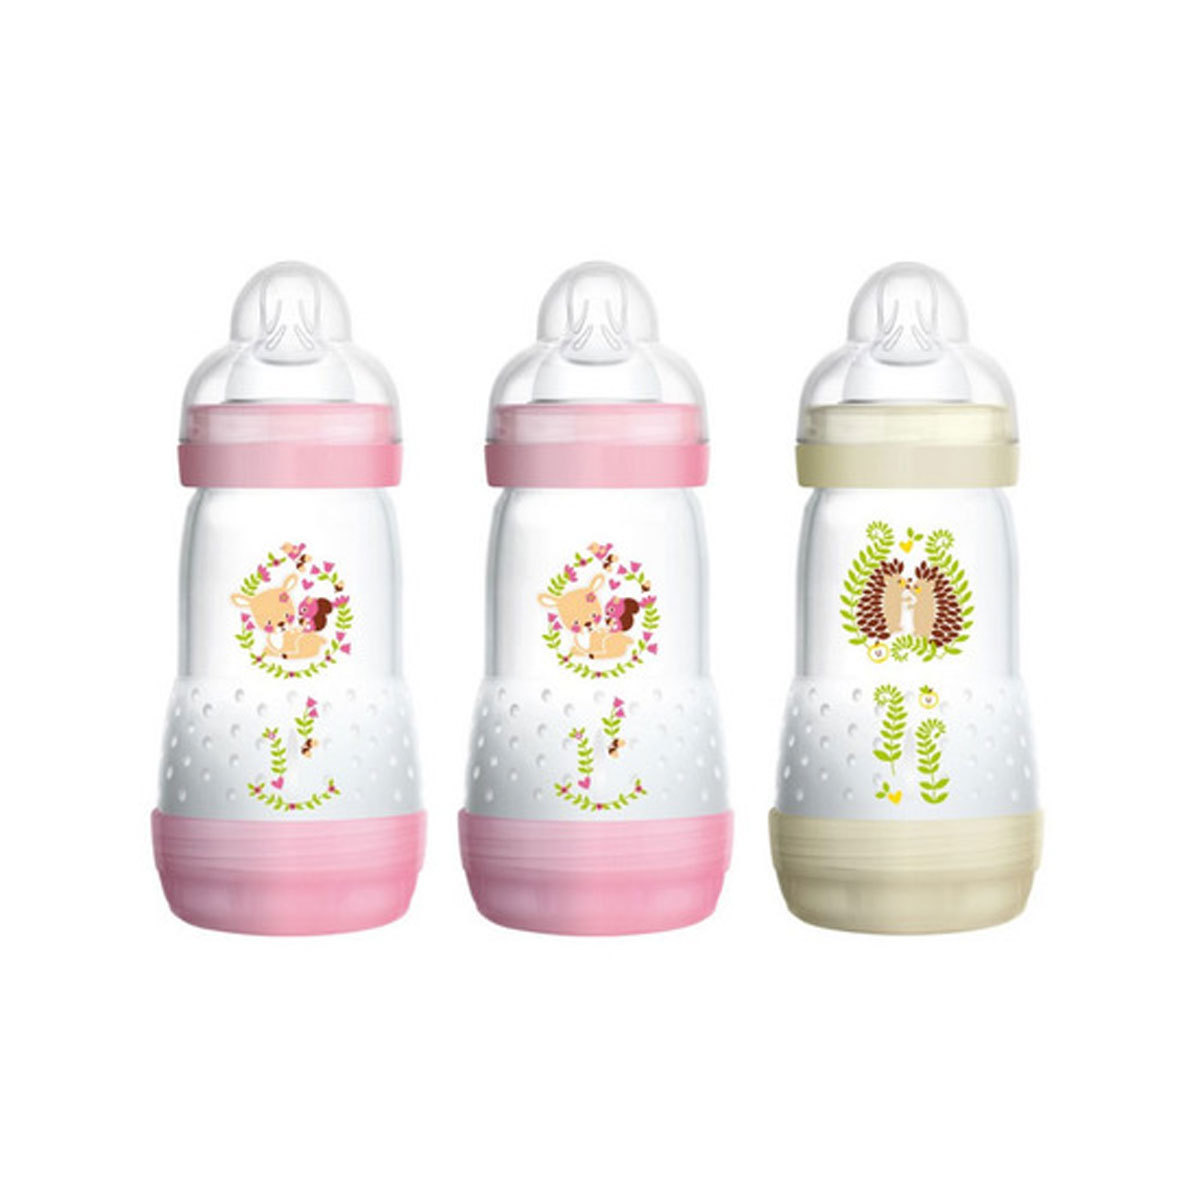 Biberon Lot de 3 Biberons Anti-colique Easy Start Rose et Marron - 260 ml Lot de 3 Biberons Anti-colique Easy Start Rose et Marron - 260 ml